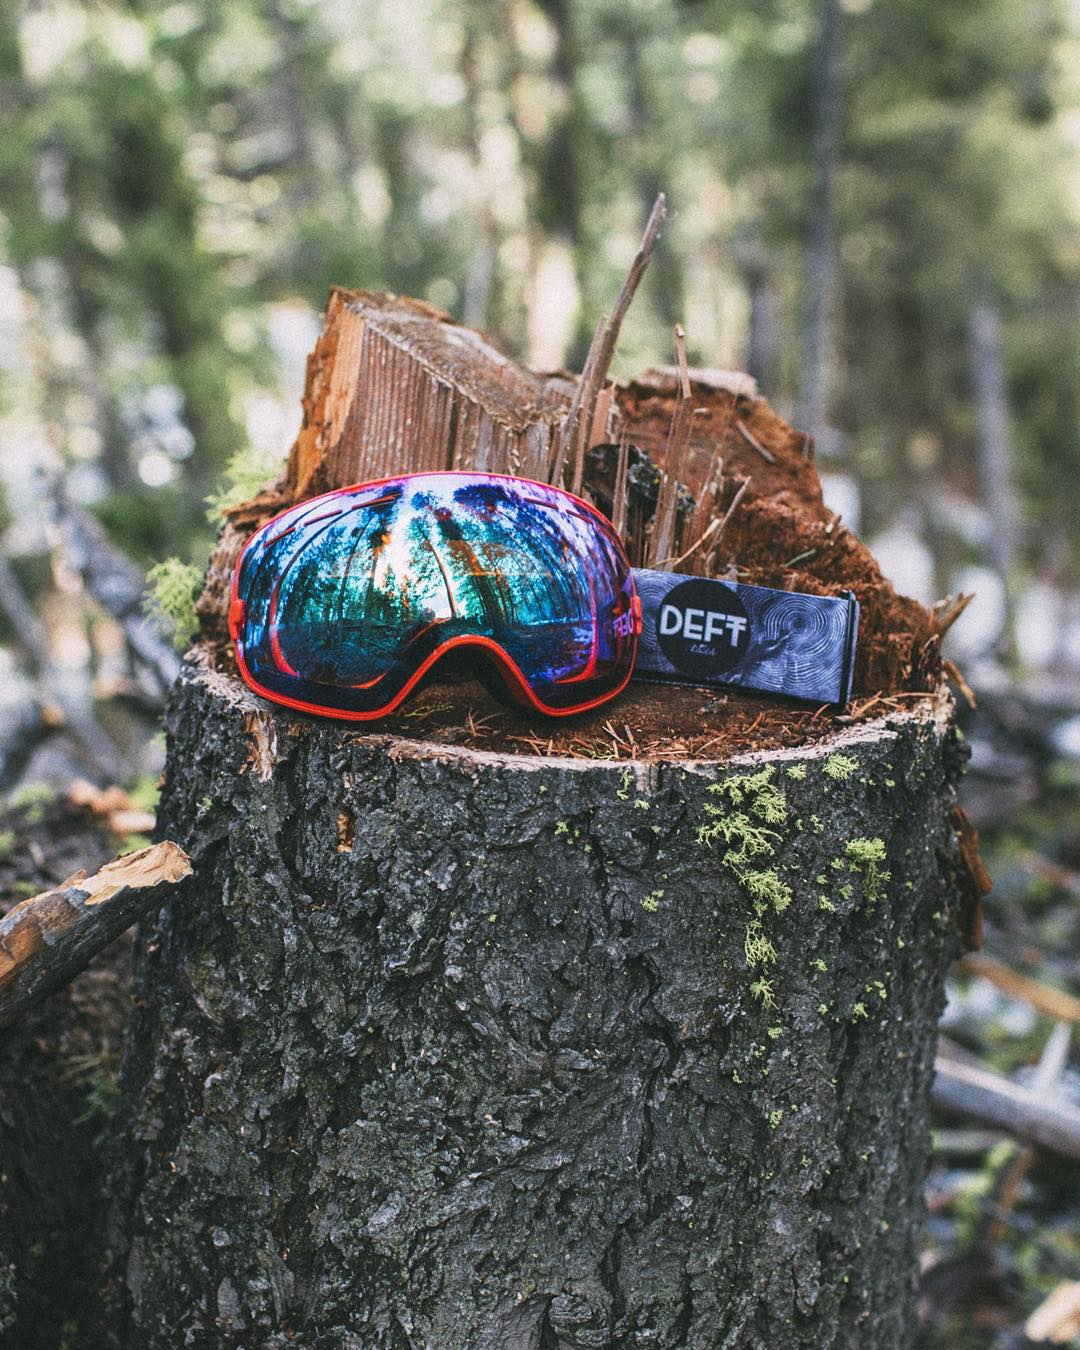 Our friends @deftoptics have just one week left on their Kickstarter Project - shop the fully customizable goggles (for under $60) by clicking the link in their bio.  Learn more about them & our next #NatureOfProof Giveaway at iwantproof.com! Photo by...